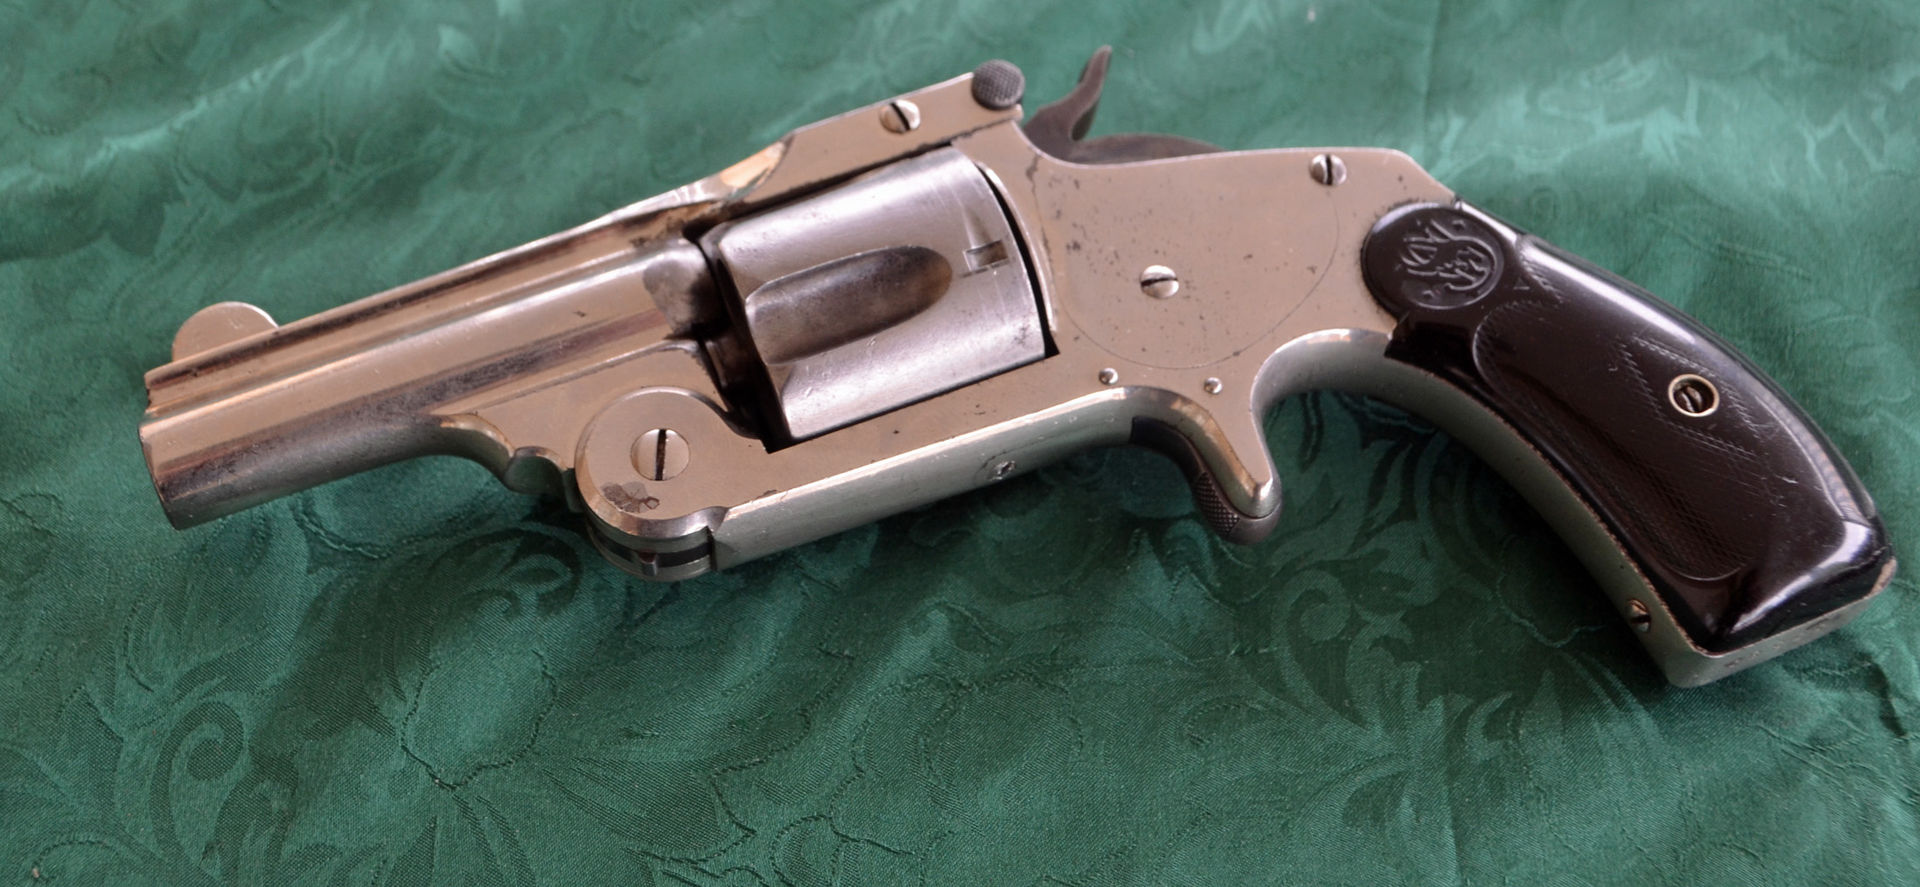 Smith & Wesson .38 Single Action 2nd Model.jpg